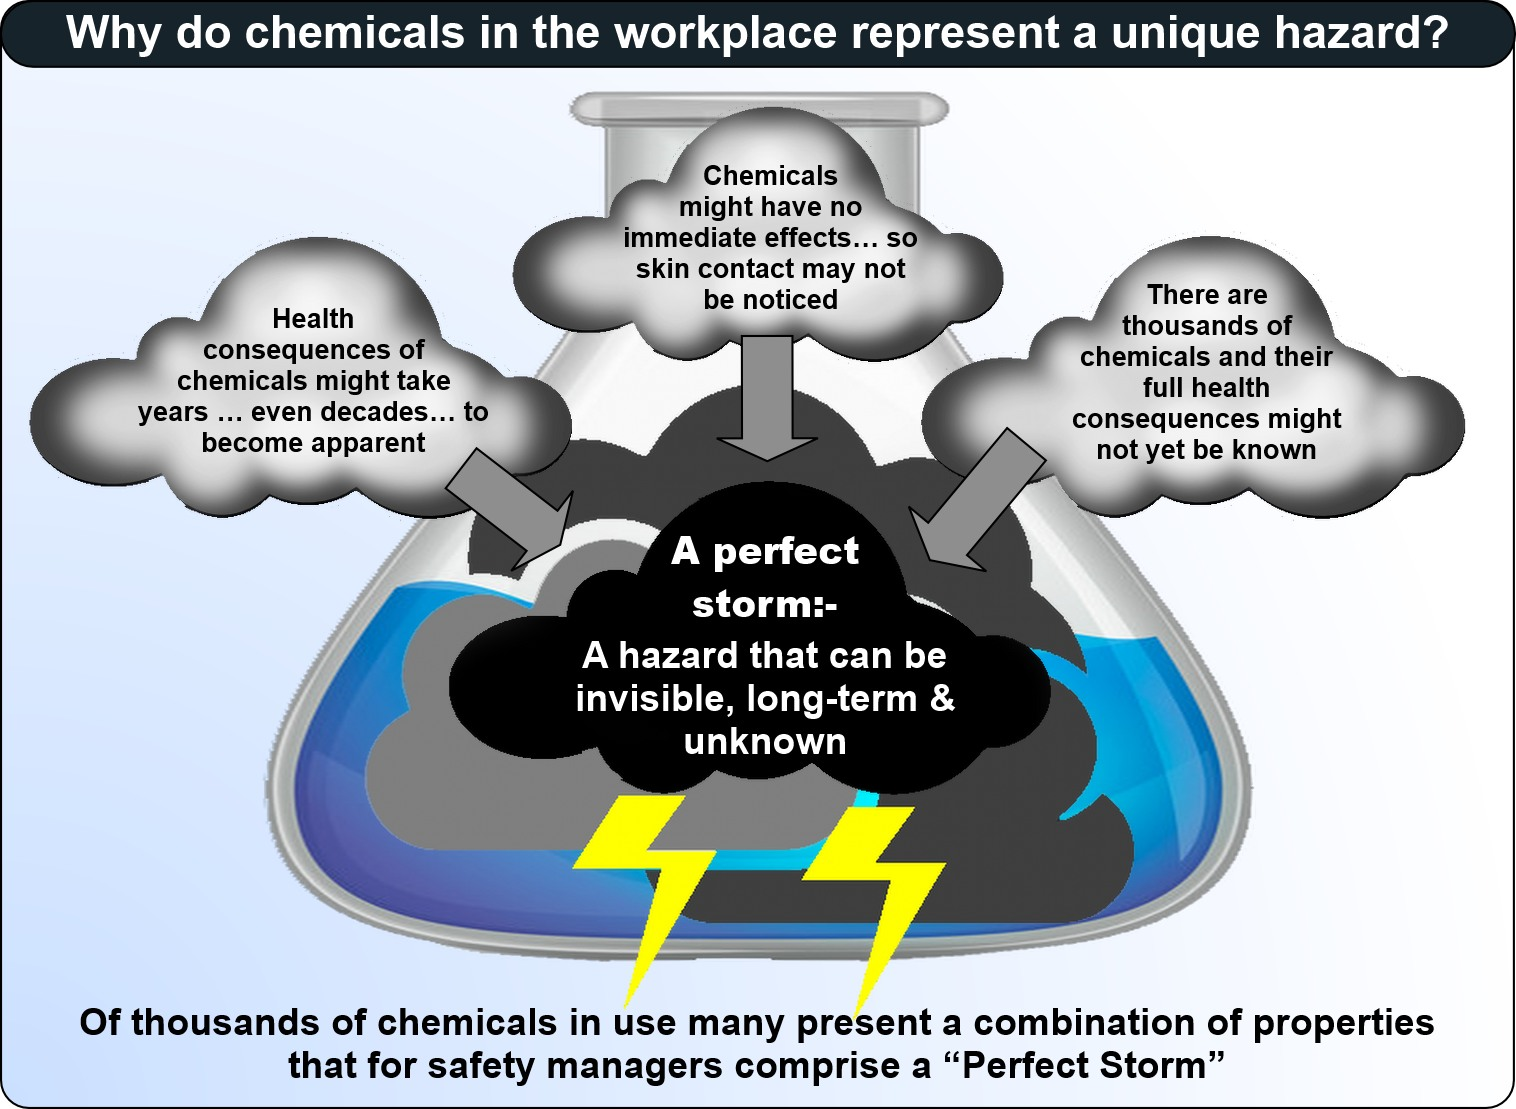 why chemicals are a unique hazard image